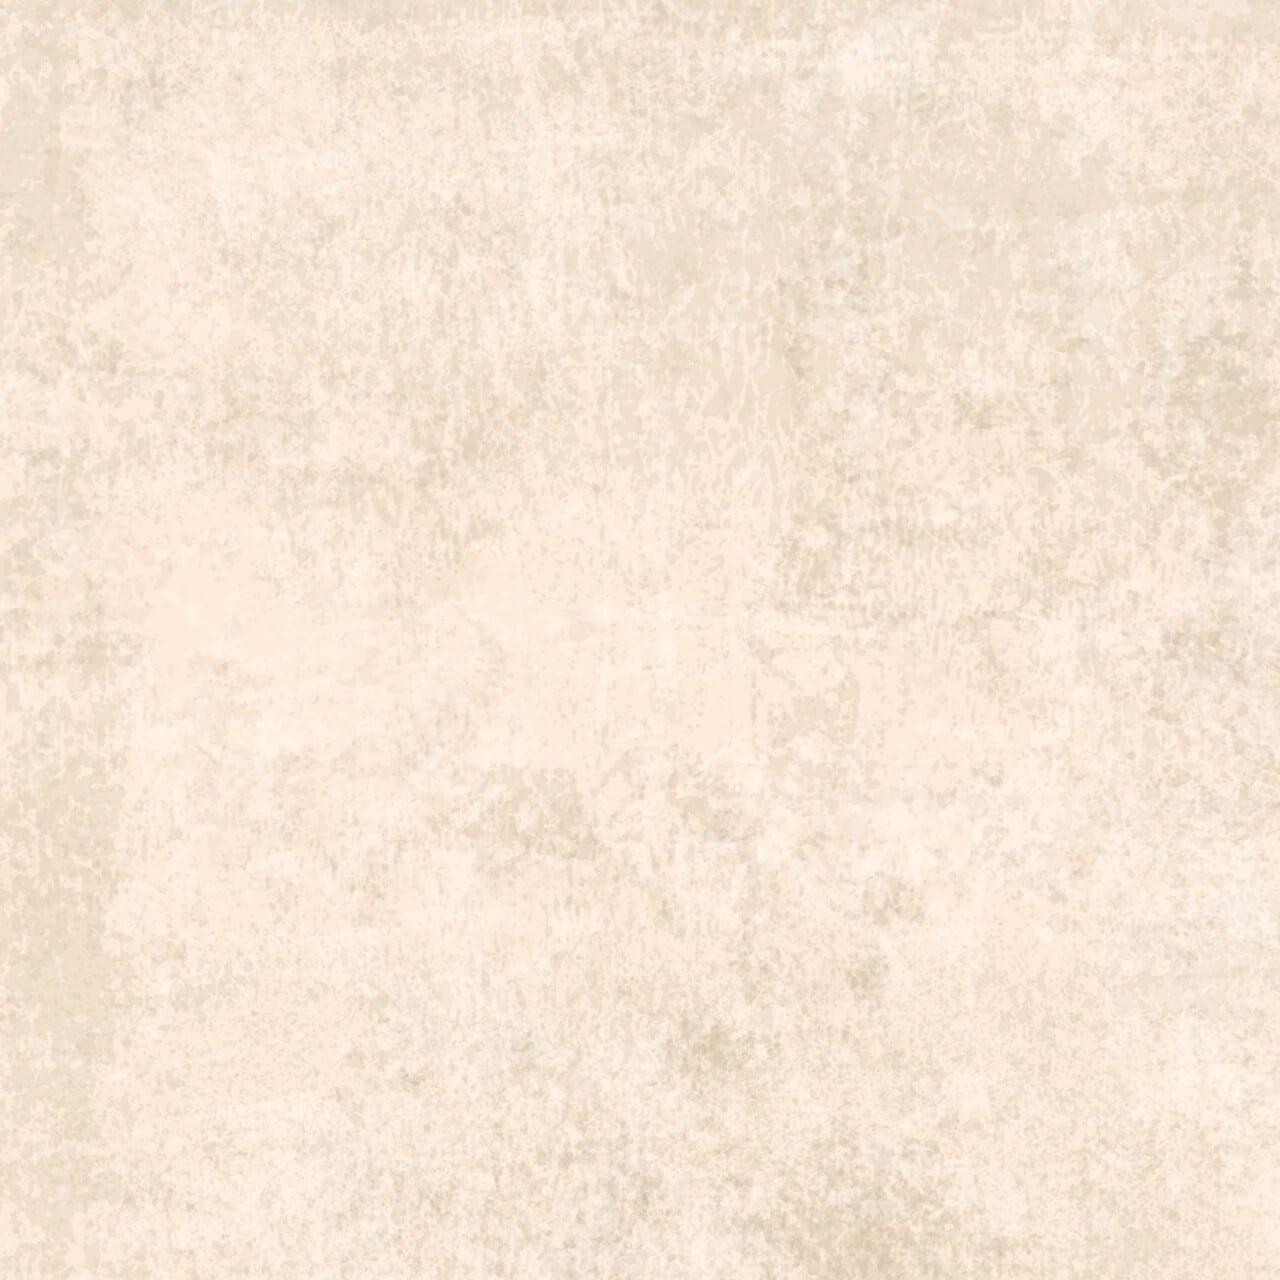 """Free vector """"Grunge Wall Texture Background"""""""